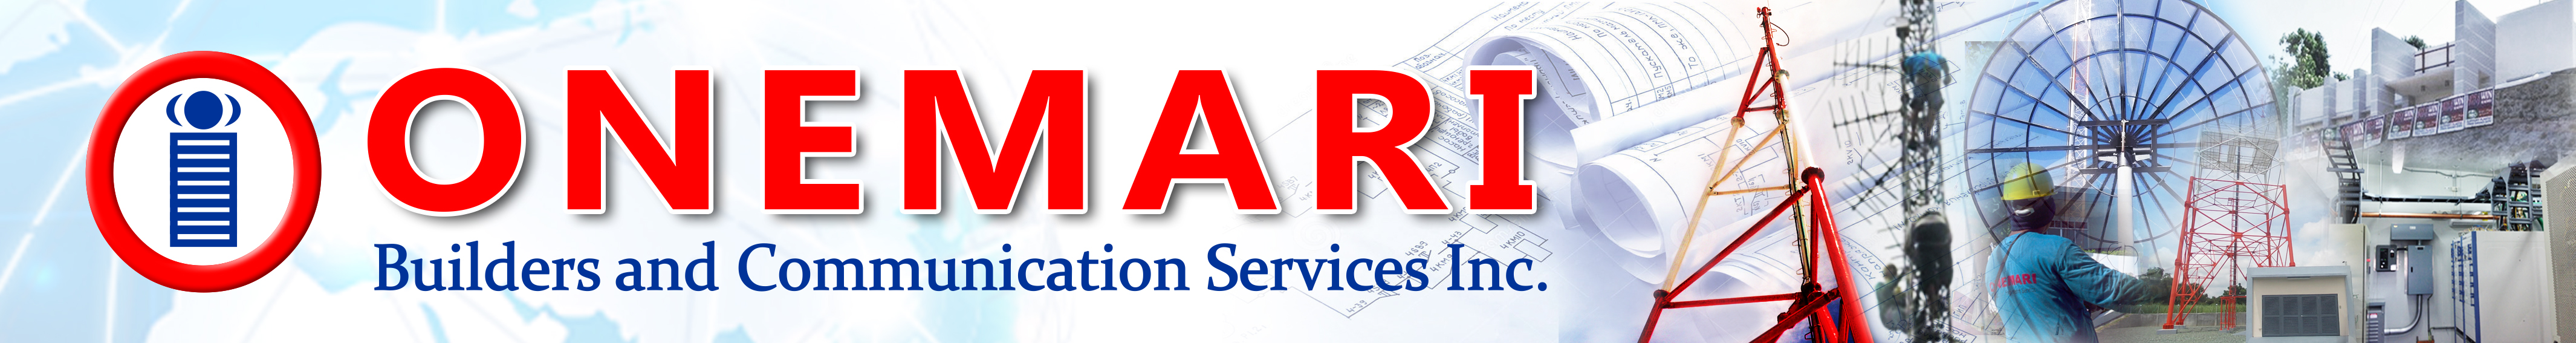 ONEMARI Builders and Communication Services